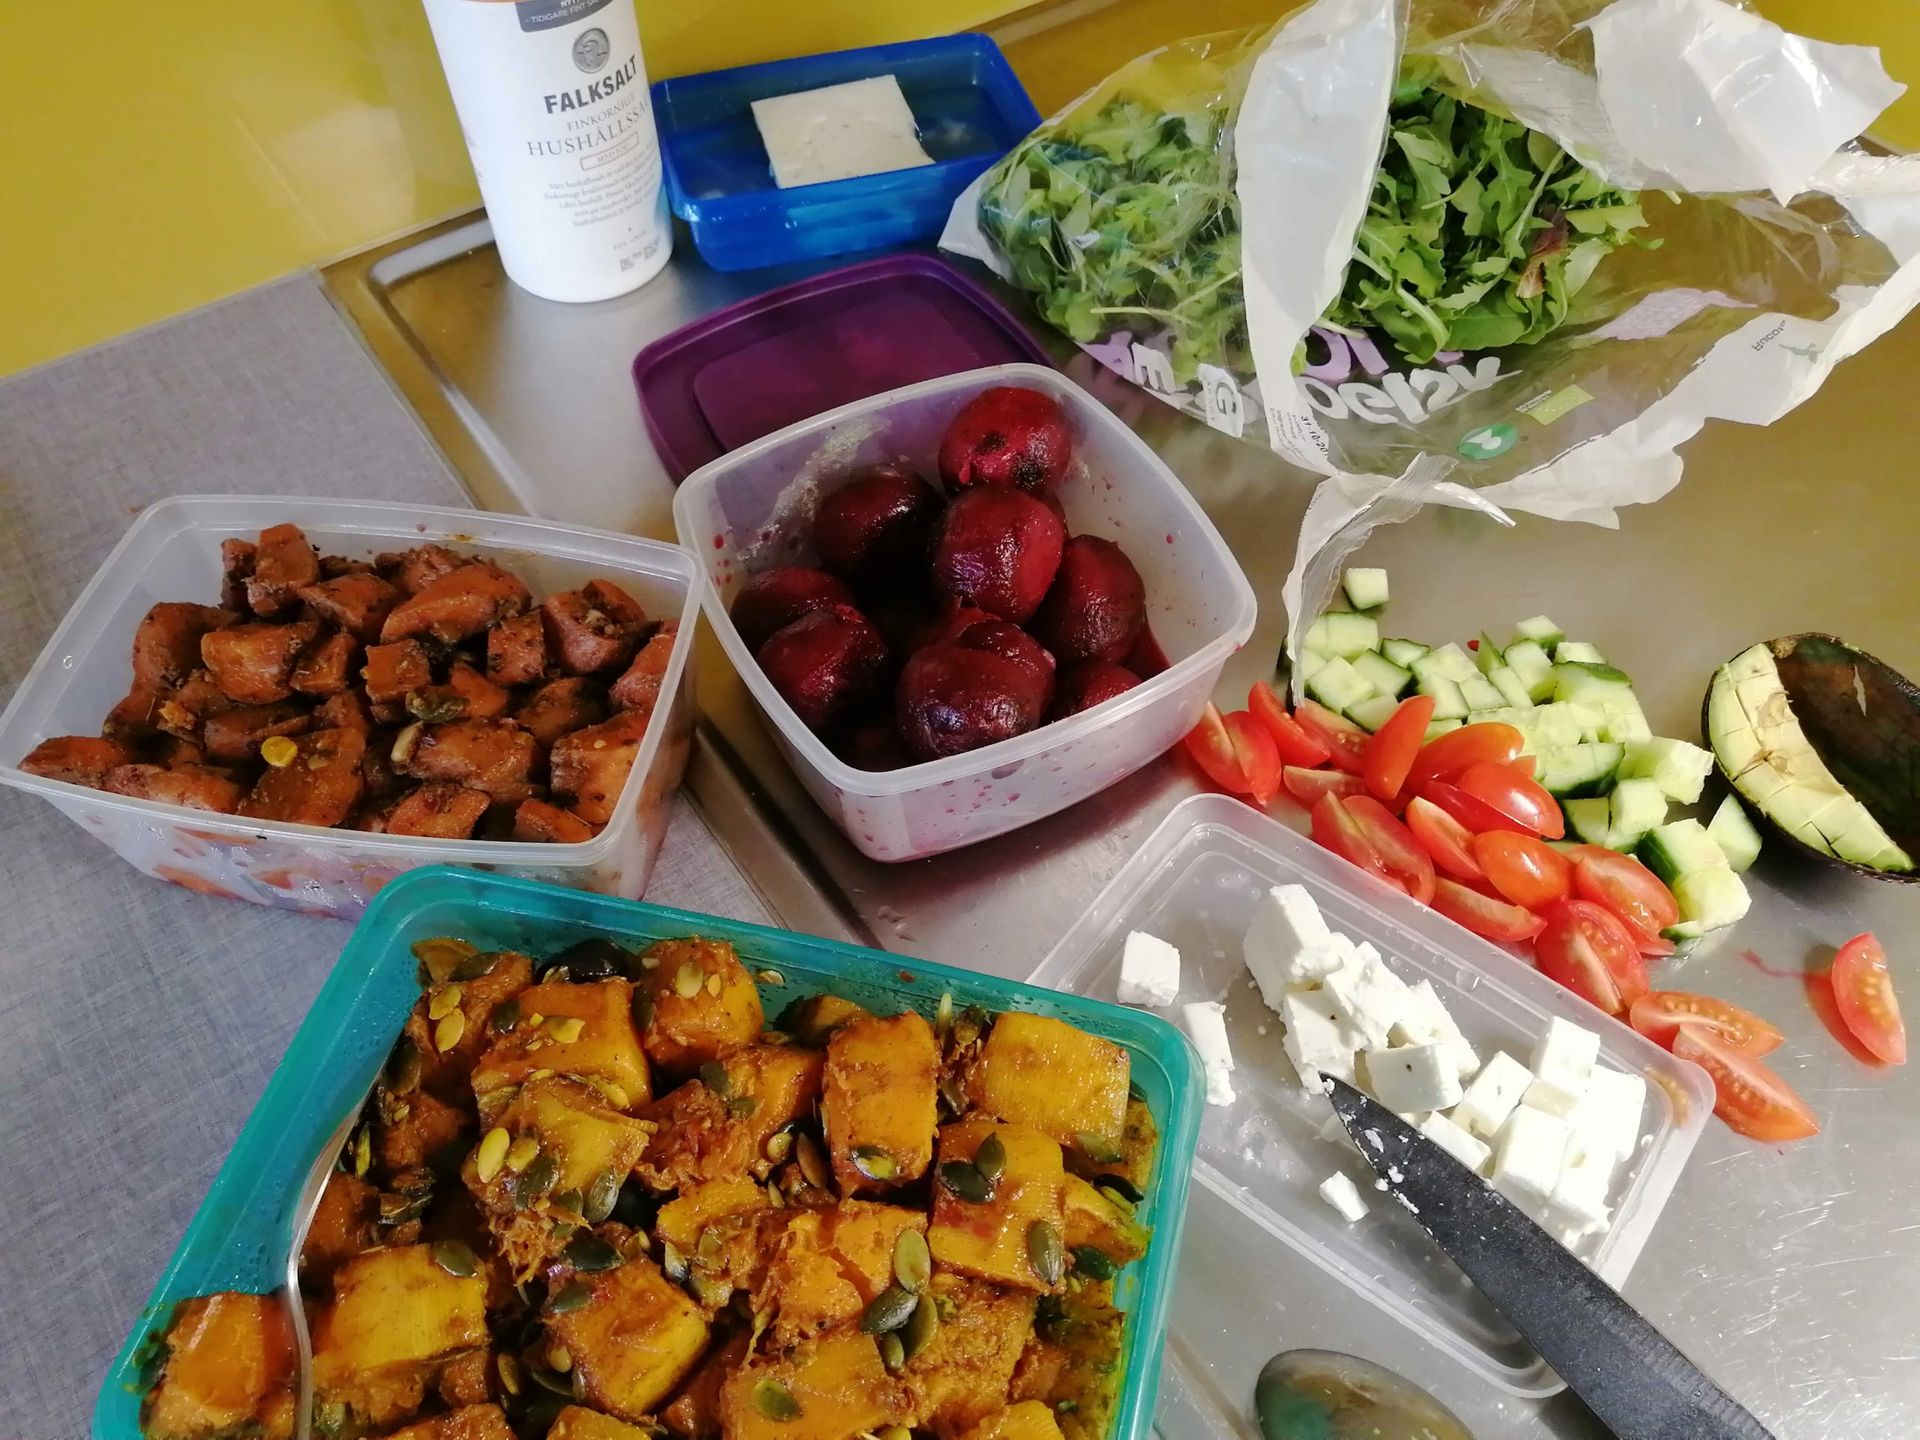 An assortment of cooked and raw vegetables on a kitchen counter, prepared to make a salad